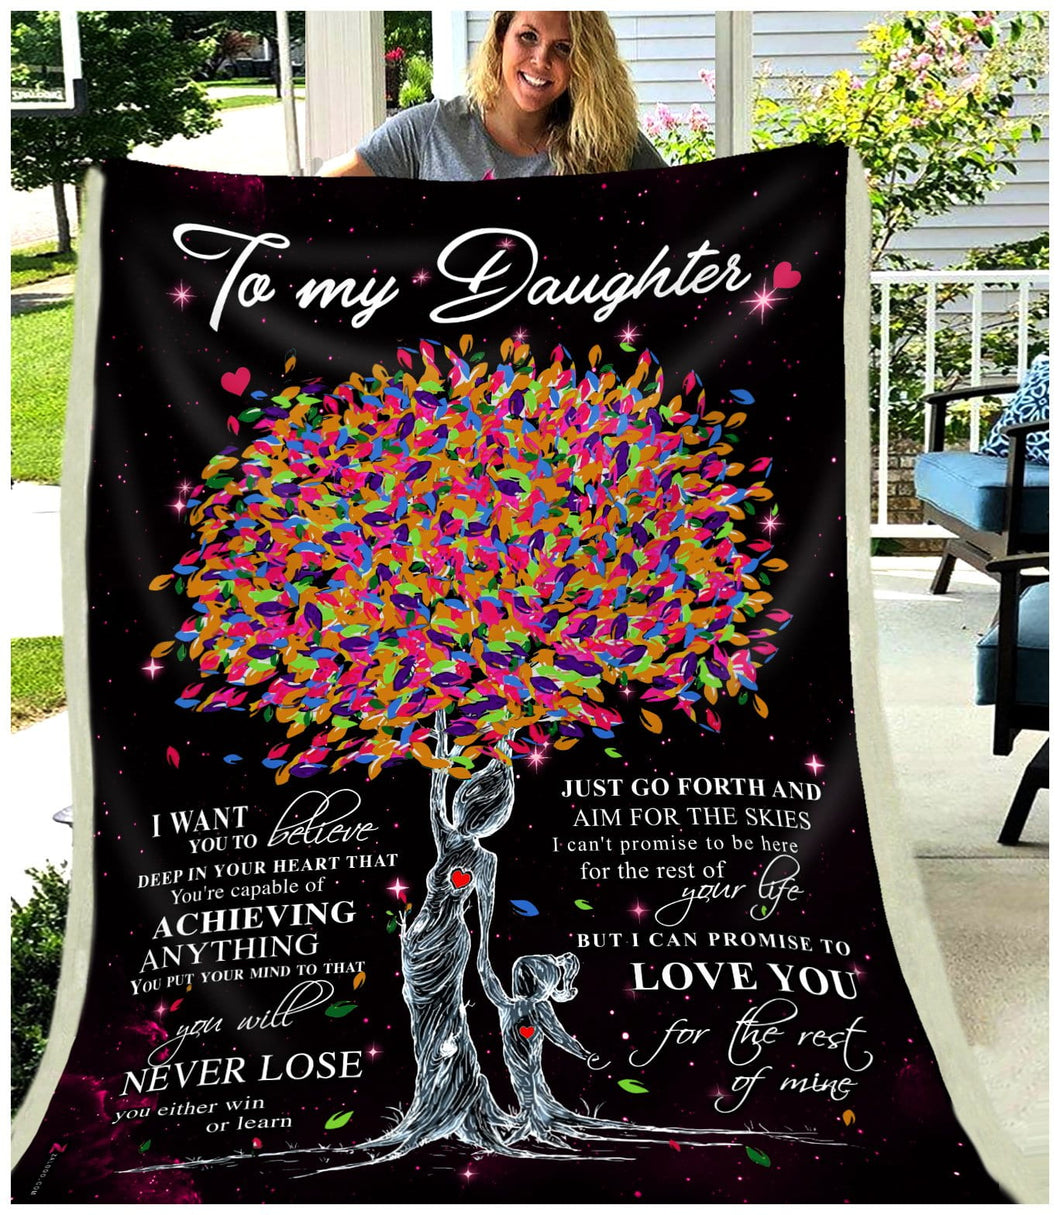 BLANKET - Daughter - Love you for the rest of mine (Mom)